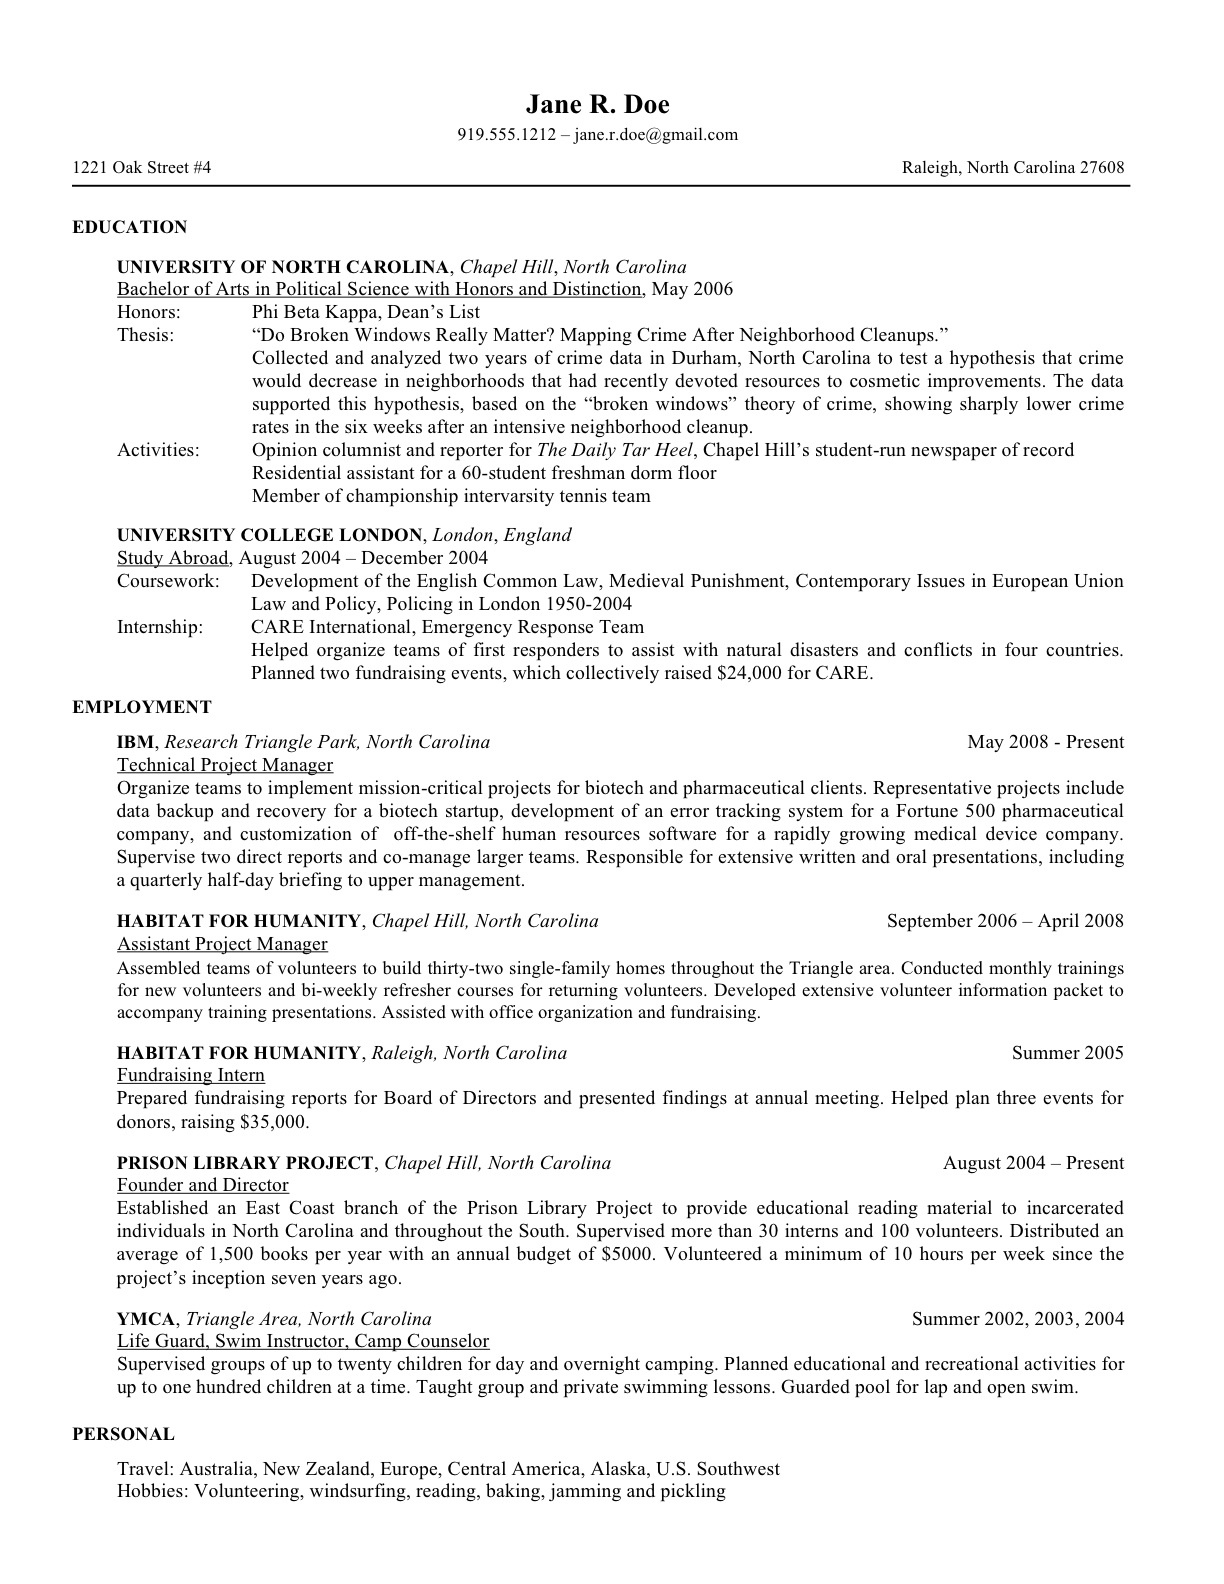 law school resume templates prepping your for of university at study abroad advisor Resume Study Abroad Advisor Resume